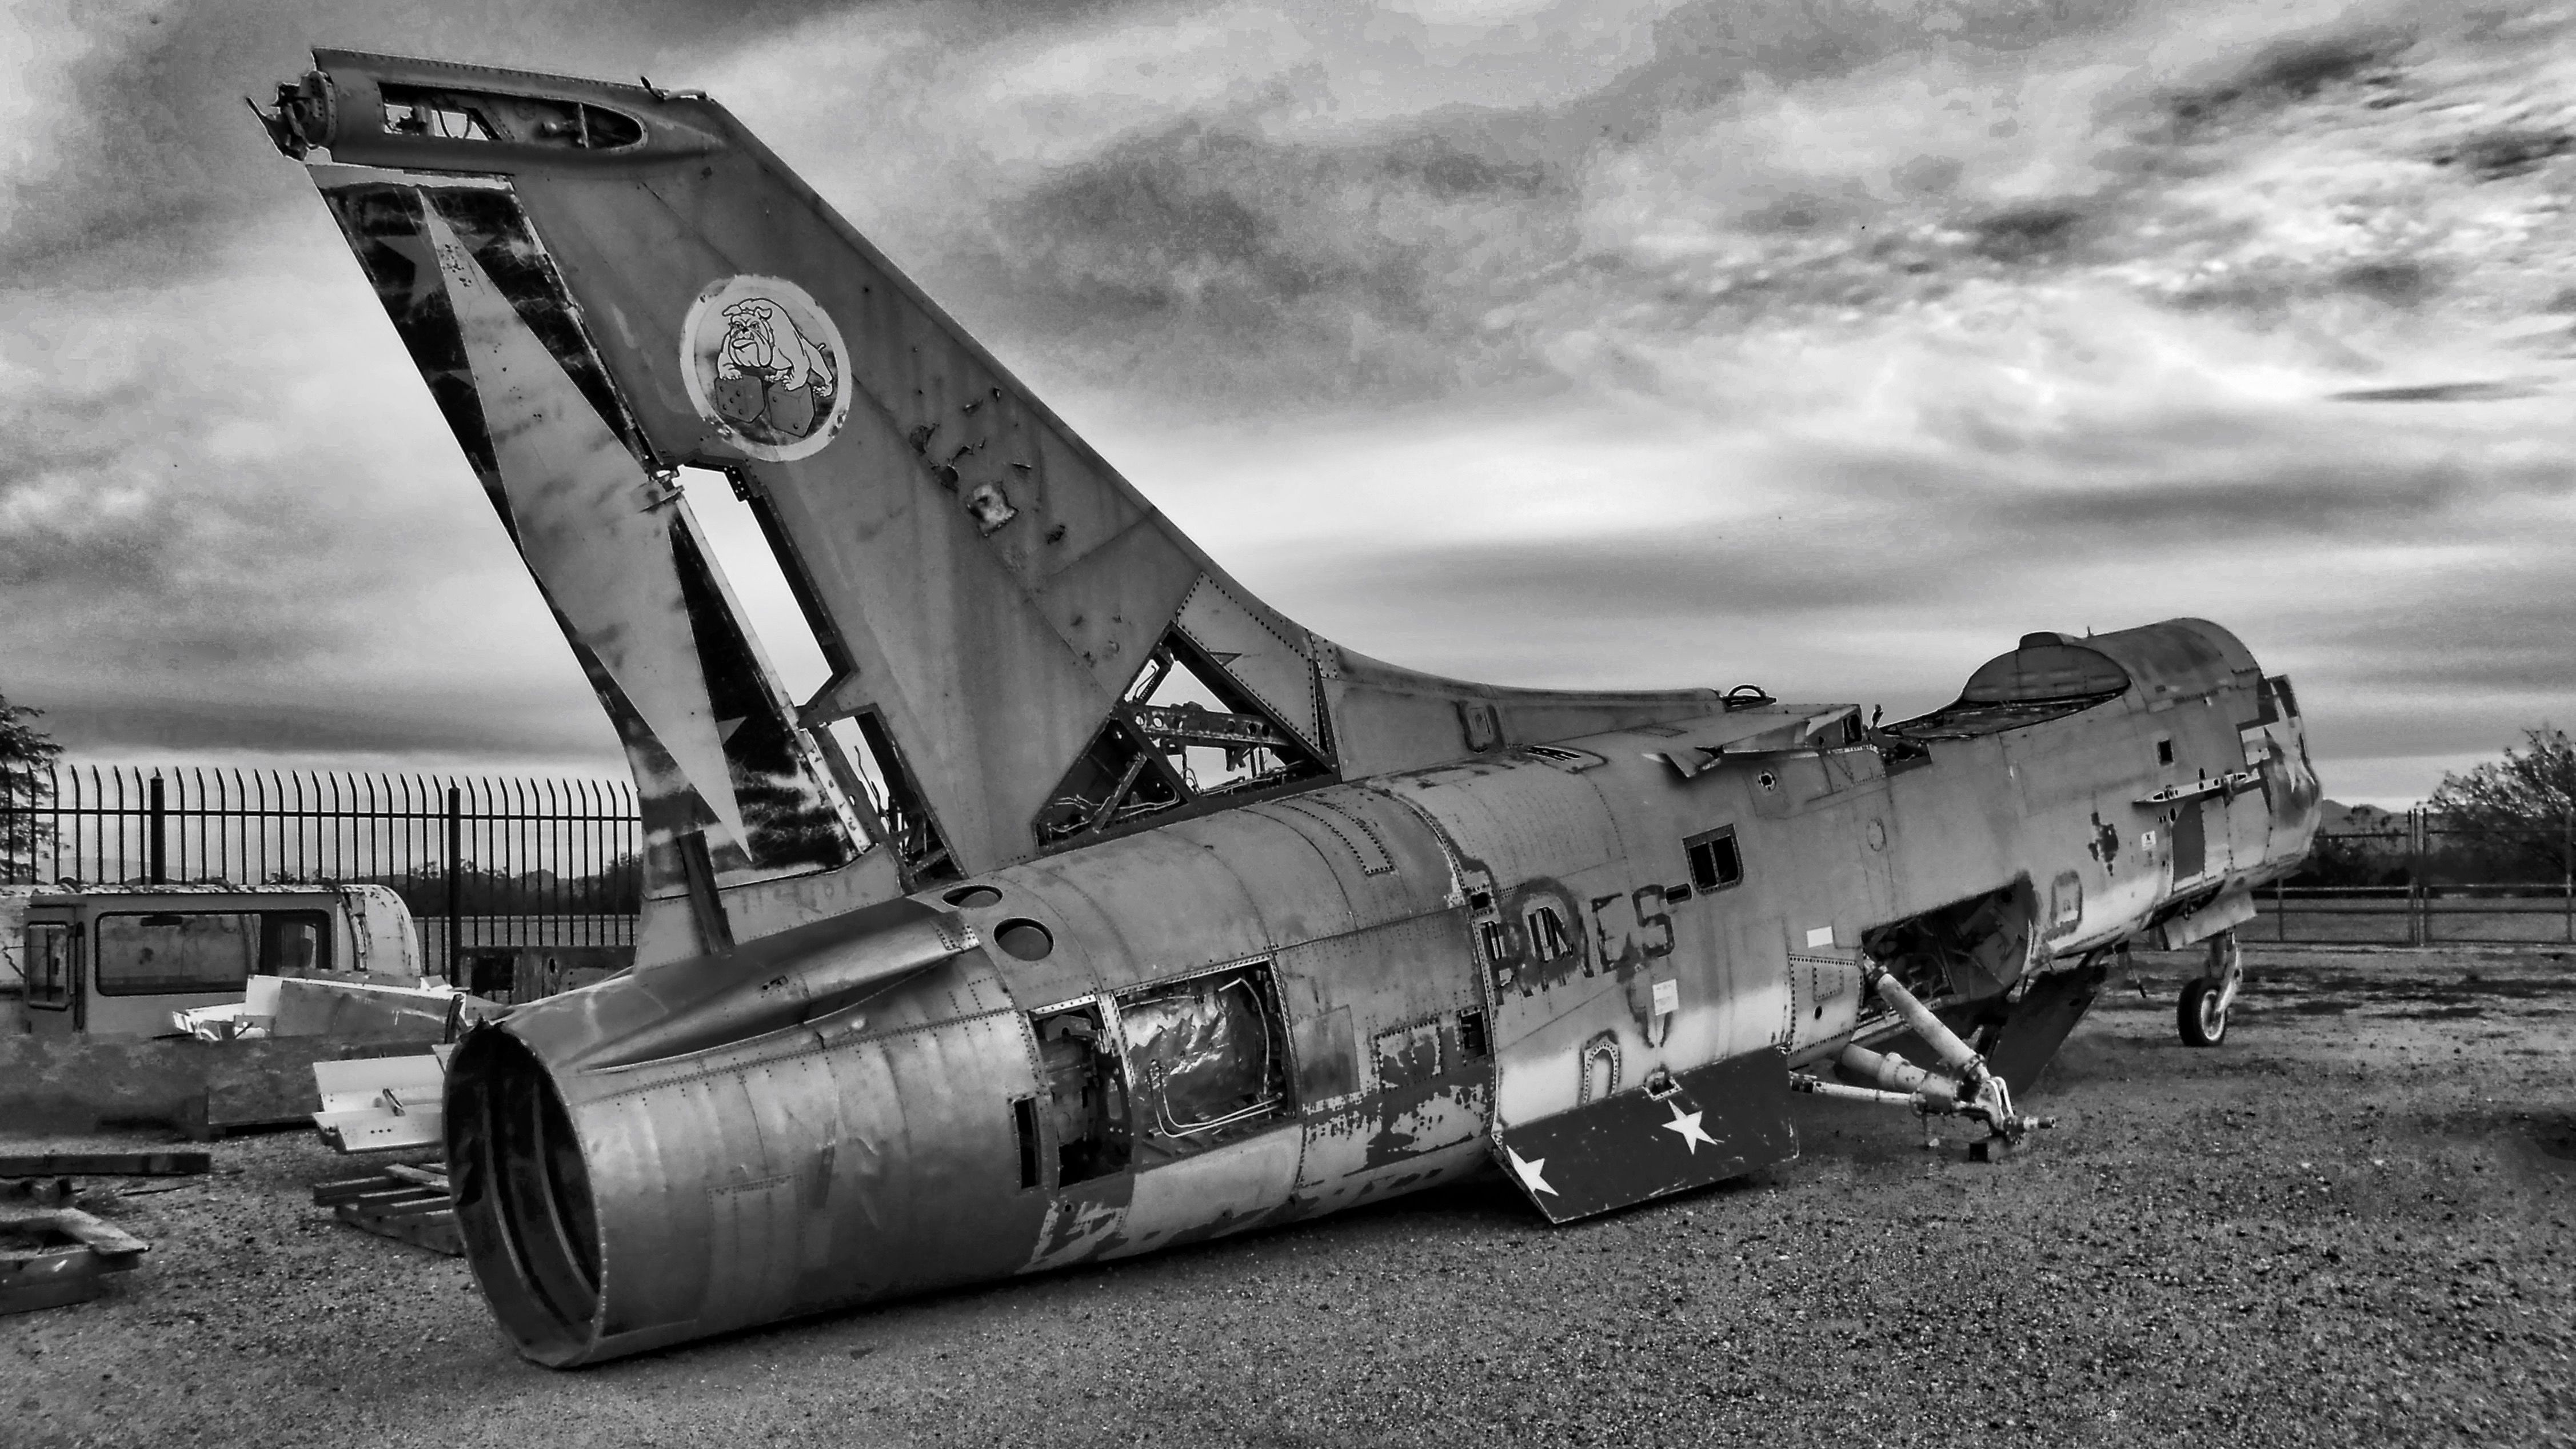 Marine F8 Crusader sitting by the side of the road in